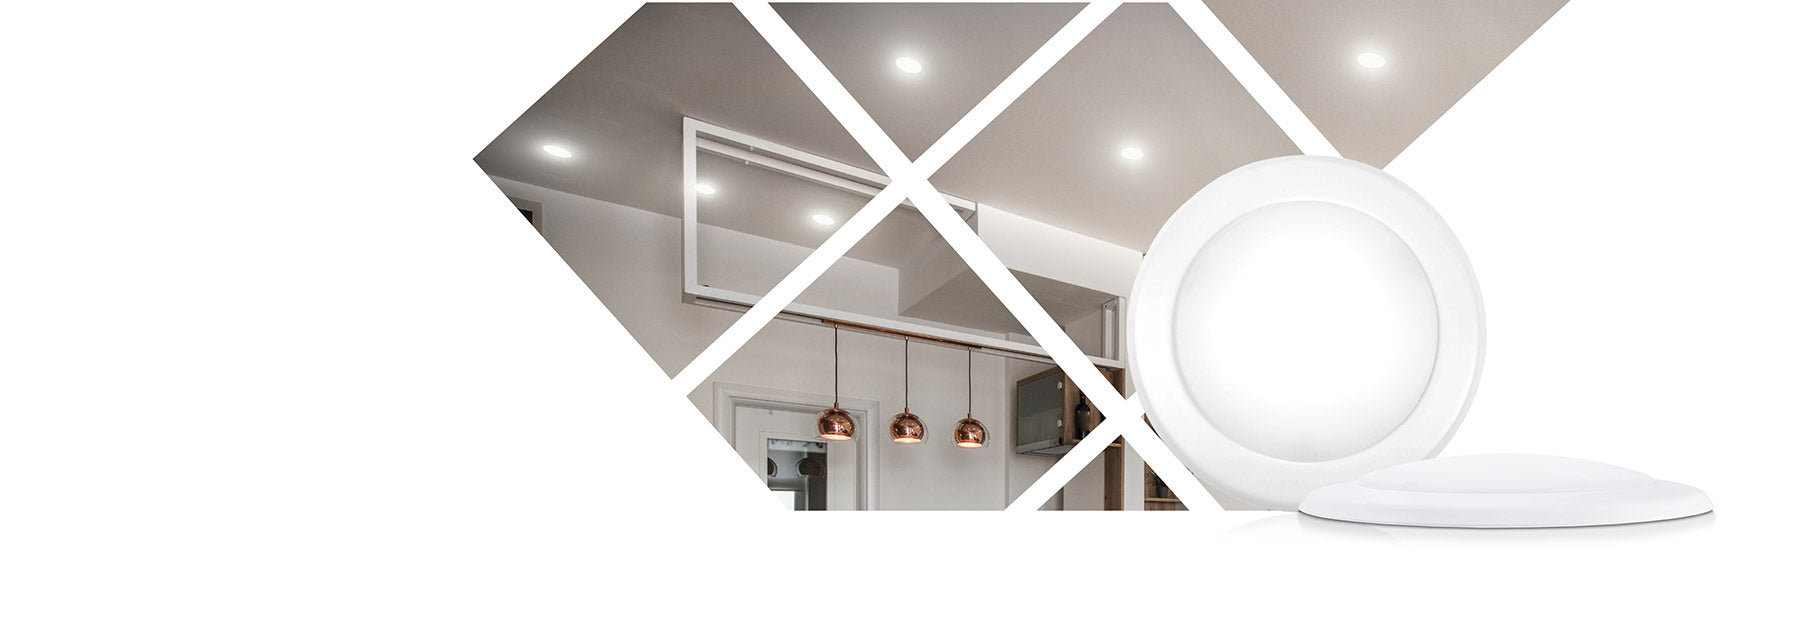 Parmida LED Disk Light is the perfect flush mount ceiling light. They are ultra-thin with universal installation methods, they work in both recessed cans and junction box. They give out great light output that can illuminate your home beautifully. These Disk Lights are dimmable and come in 4 inch and 5 inch sizing.